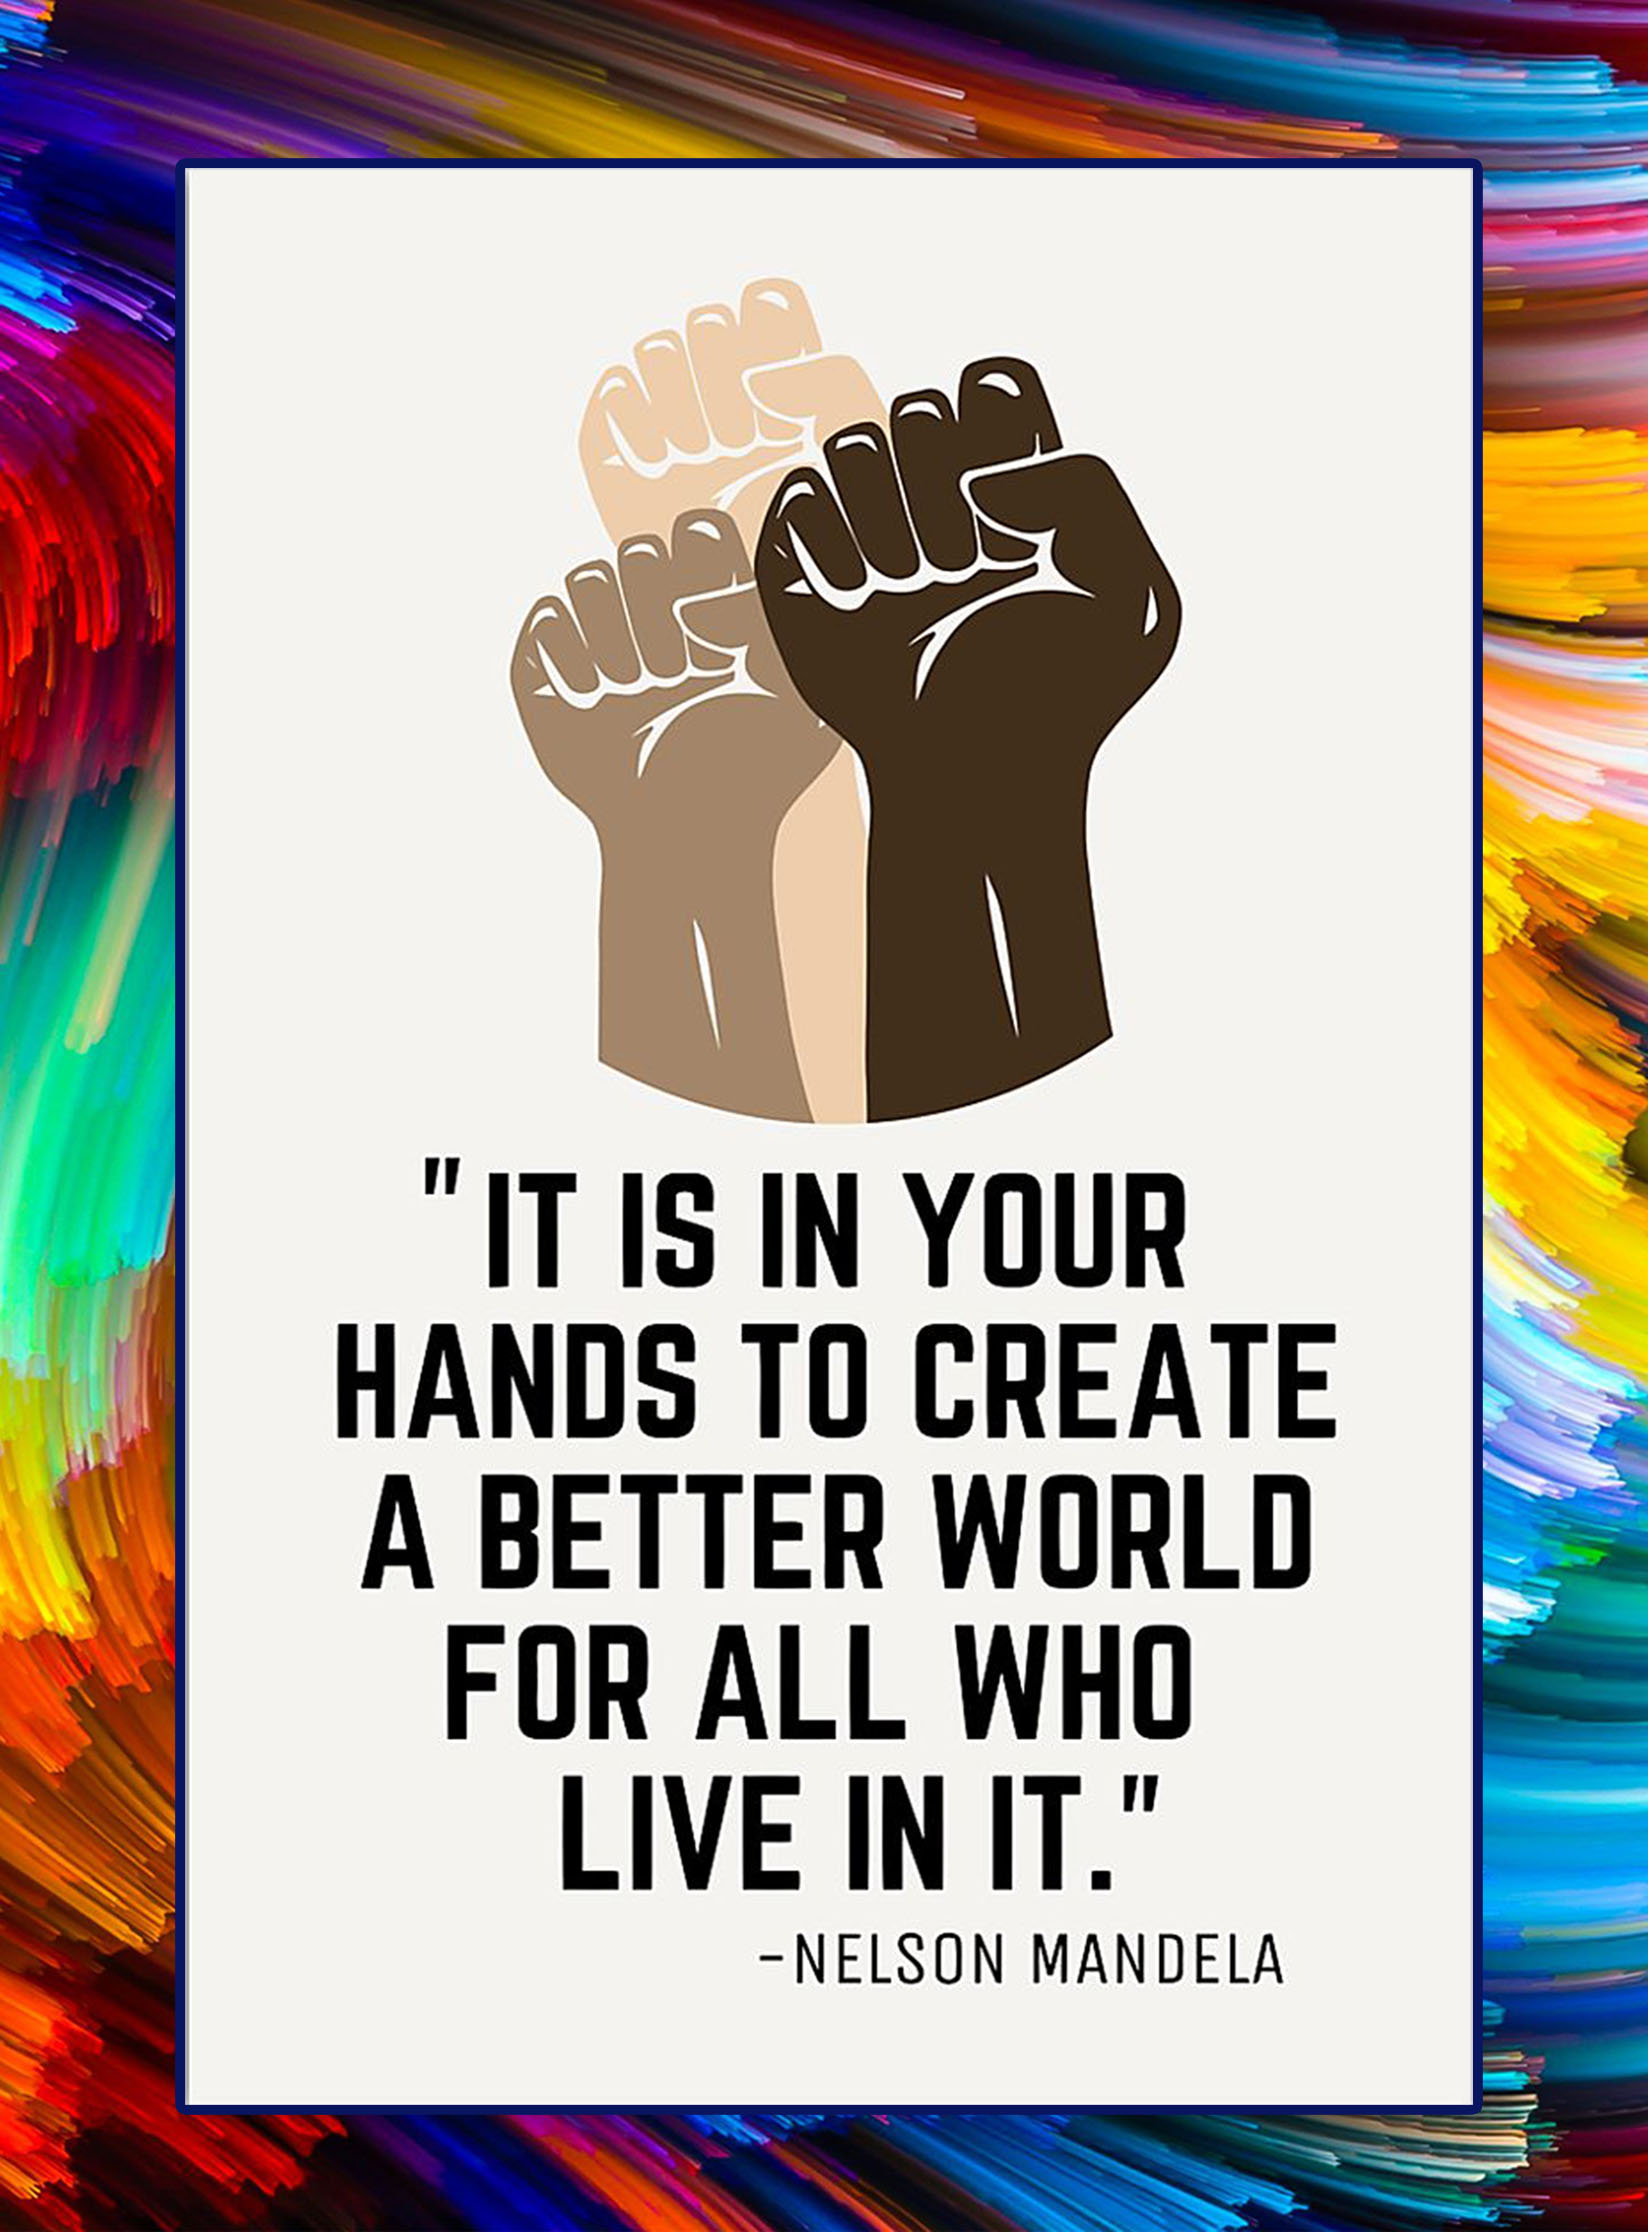 It is in your hands to create a better world for all who live in it nelson mandela poster - A1